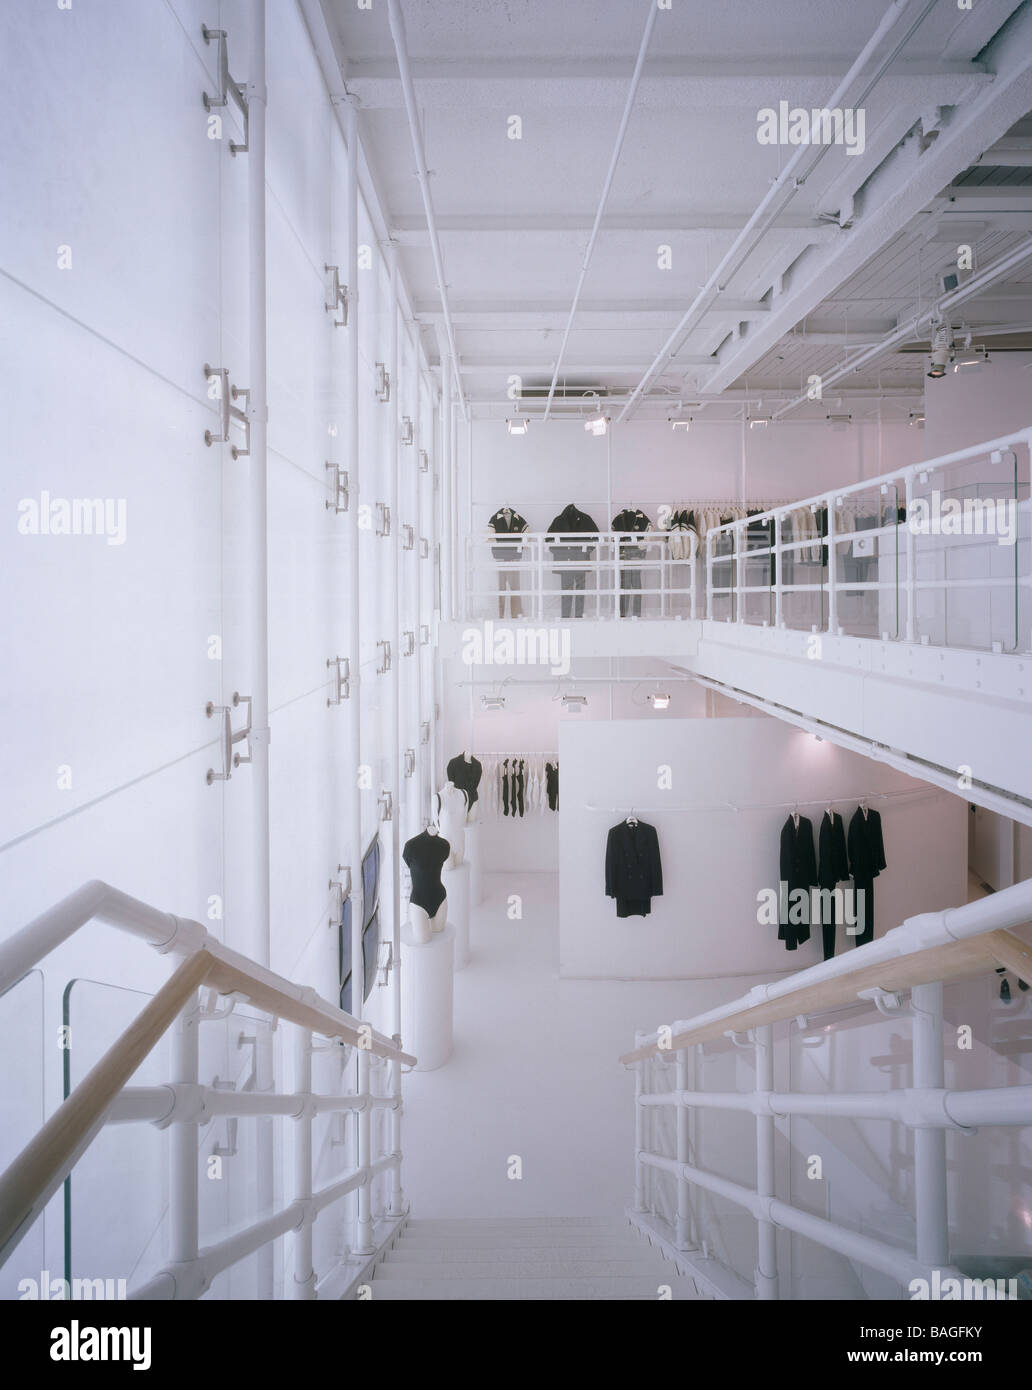 Stock Photo   Dkny Shop Overall Interior View Top Staircase Showing 1st Floor  Gallery Mannequins Merchandise On Ground Floor Dkny New Bond St